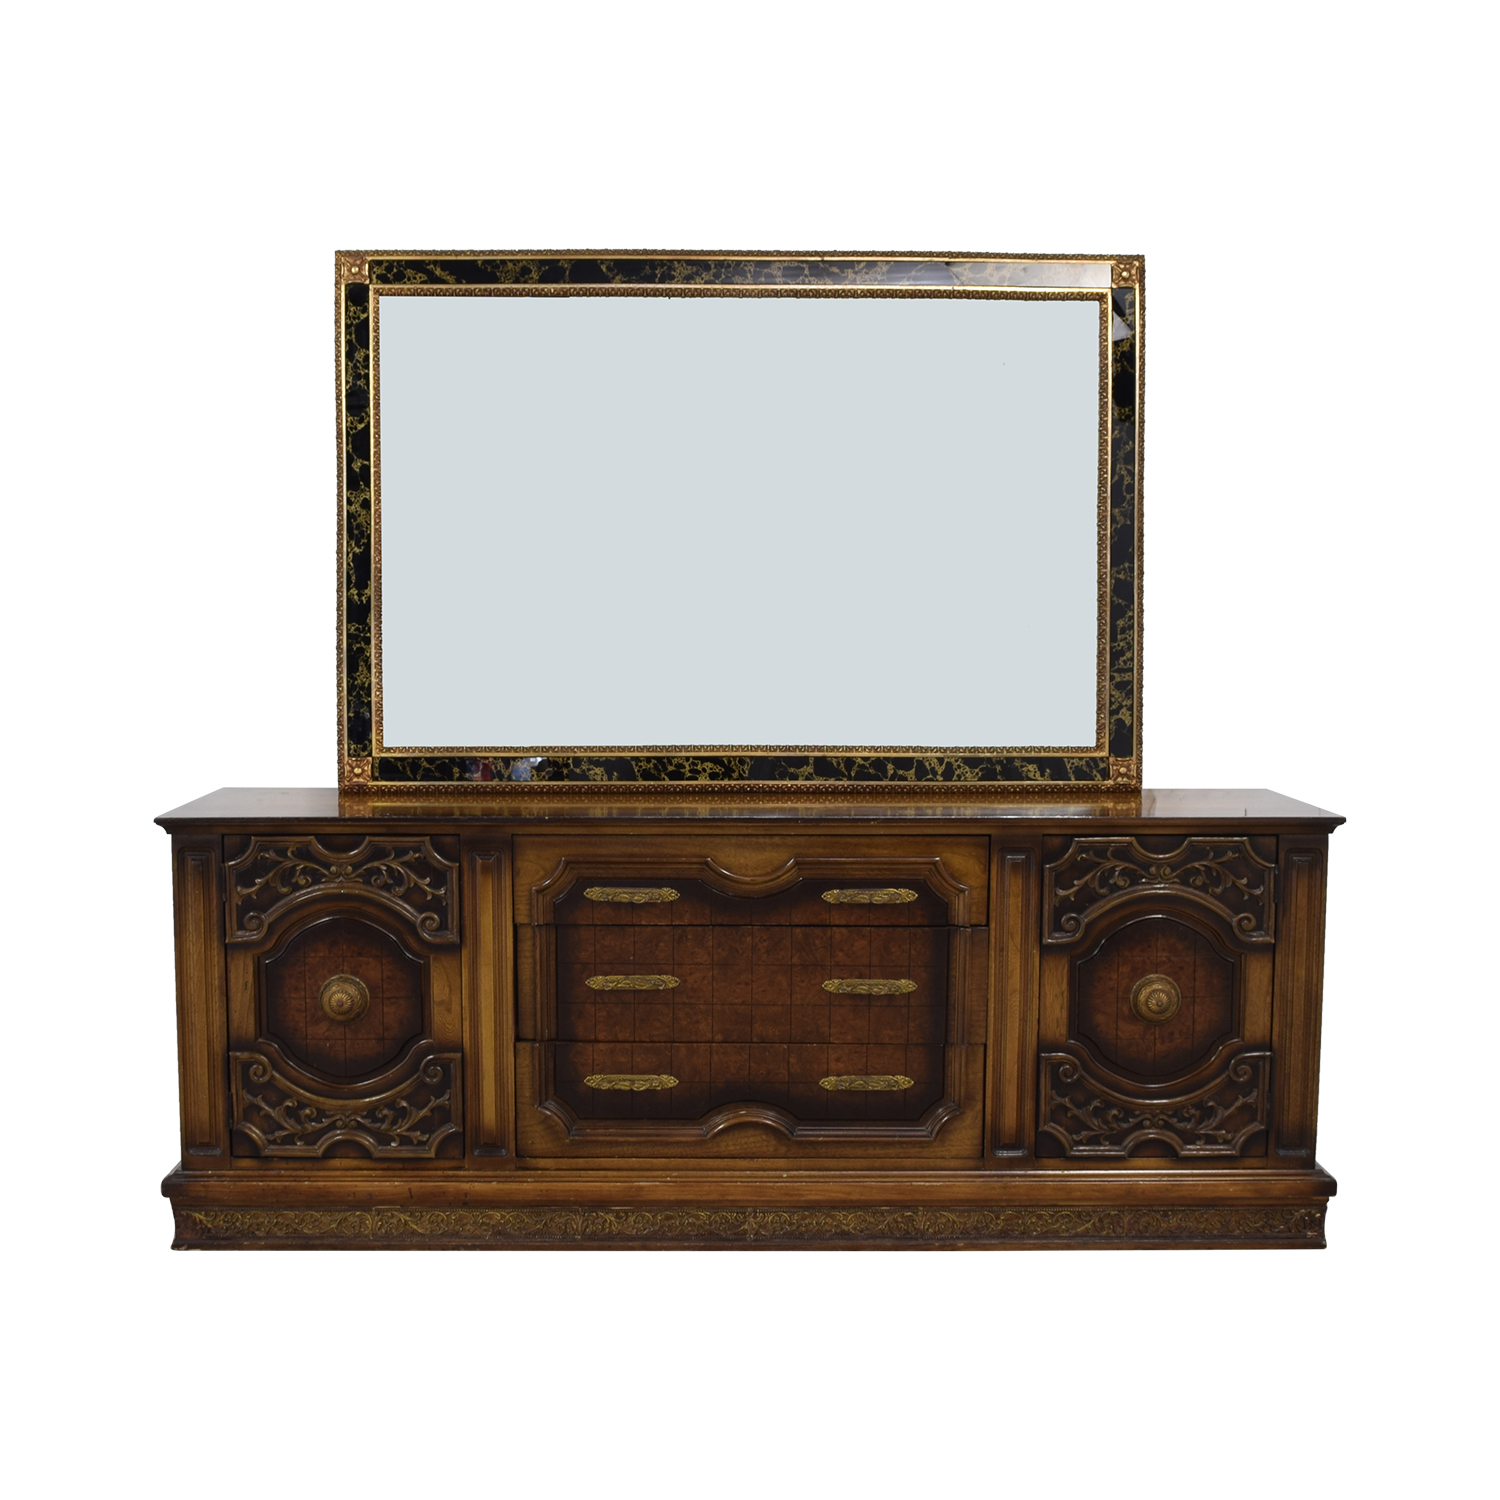 Nine-Drawer Wood Dresser with Mirror dimensions